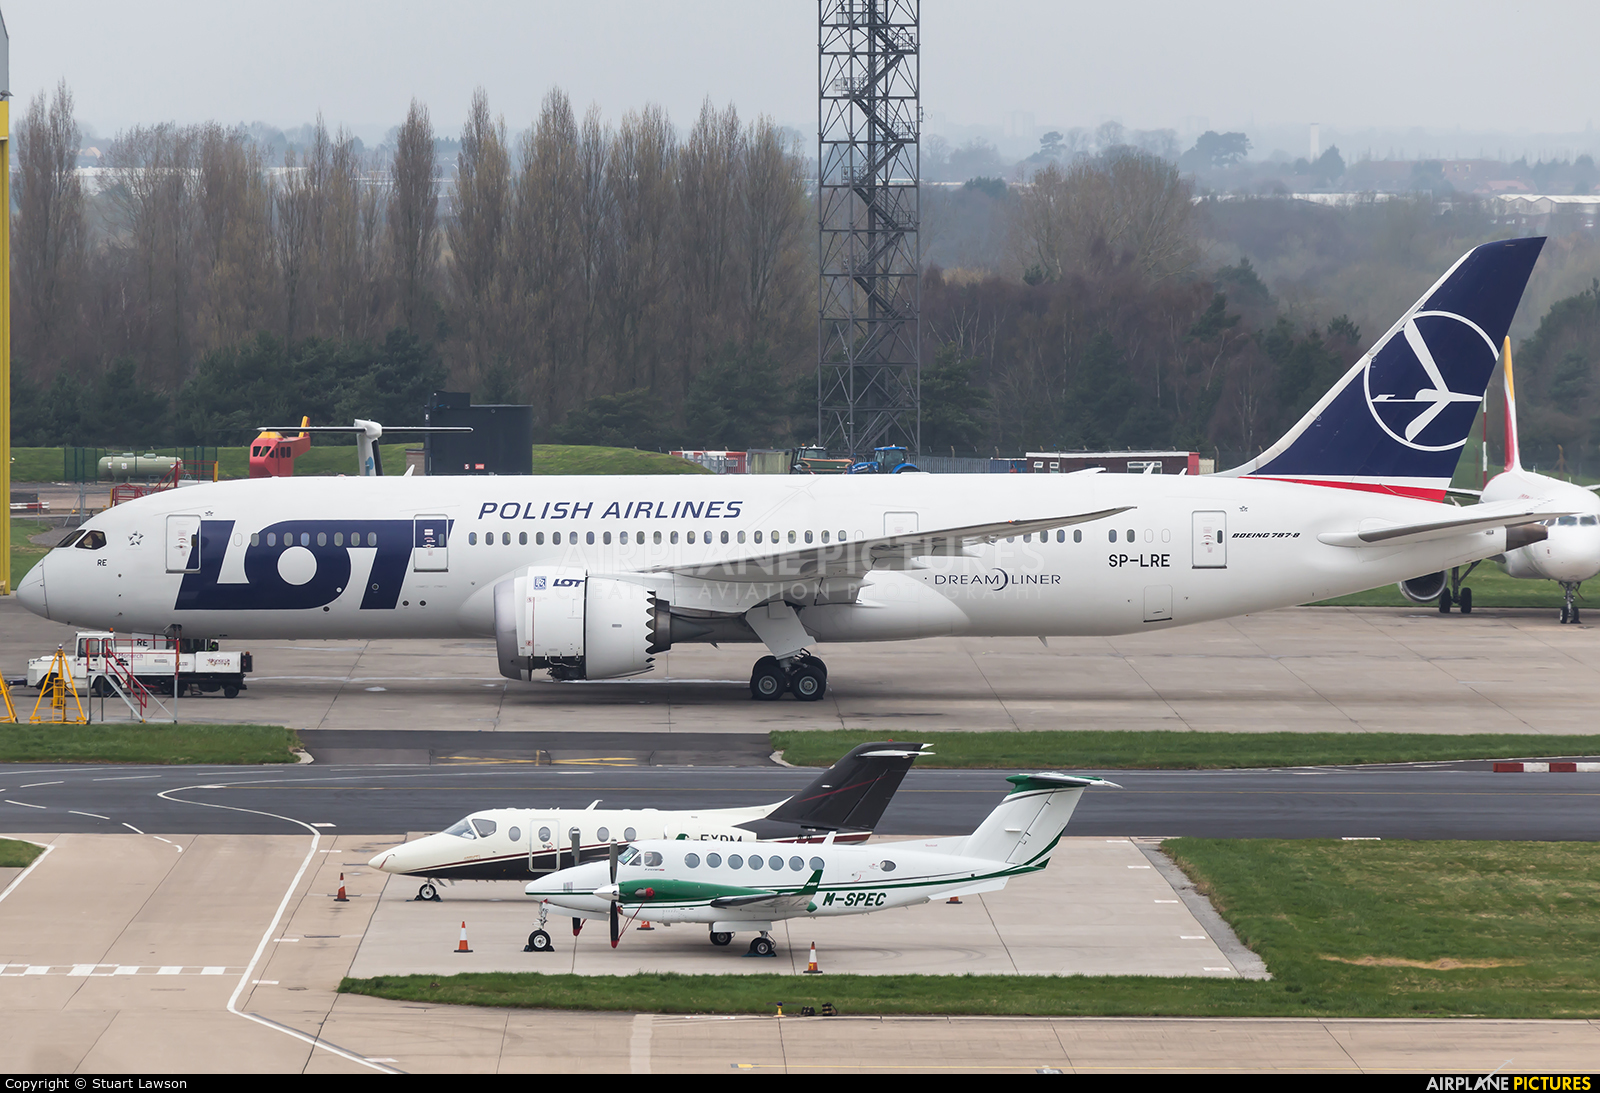 LOT - Polish Airlines SP-LRE aircraft at Birmingham